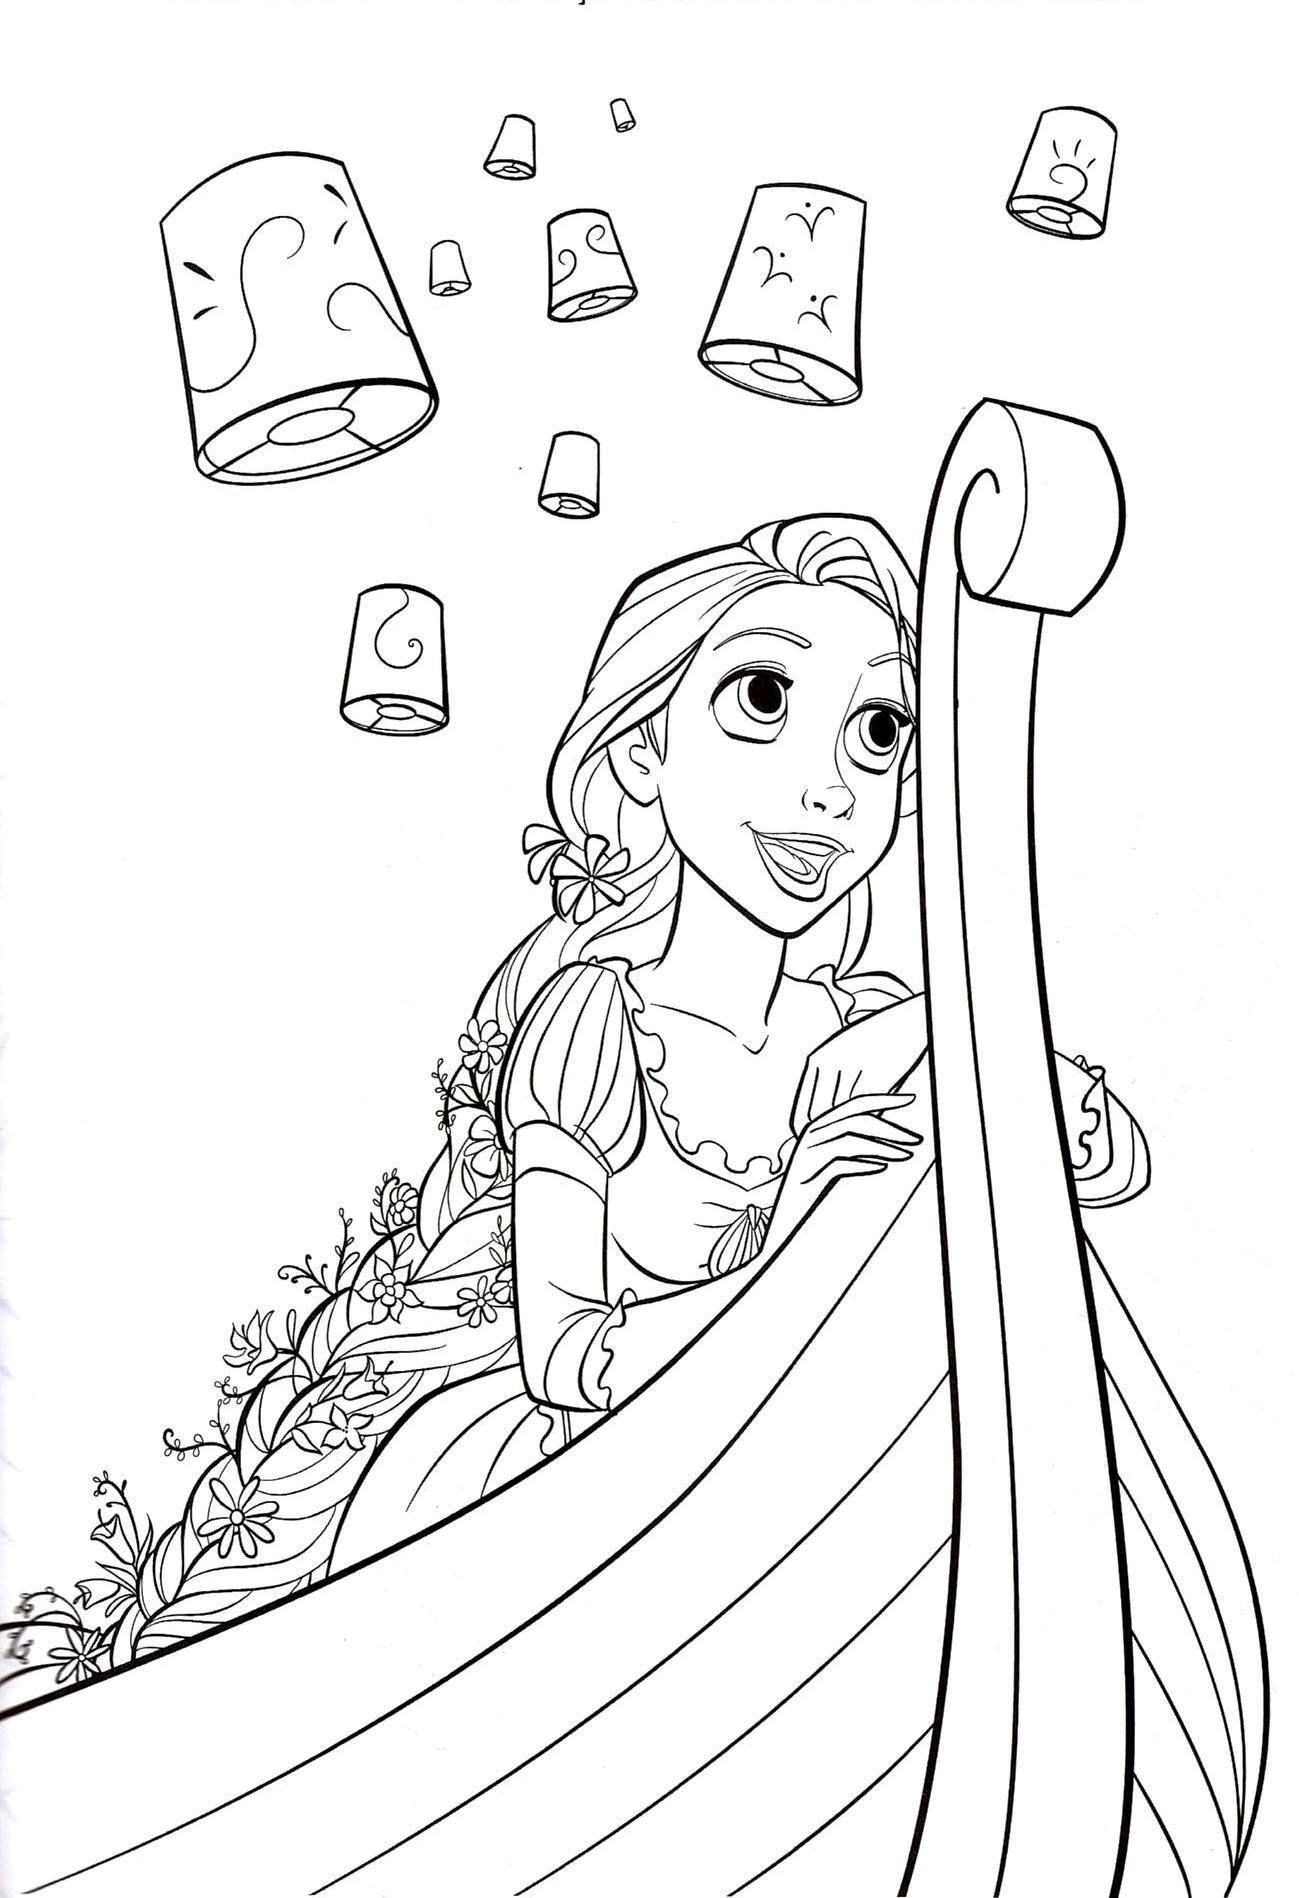 Disney Rapunzel Coloring Pages